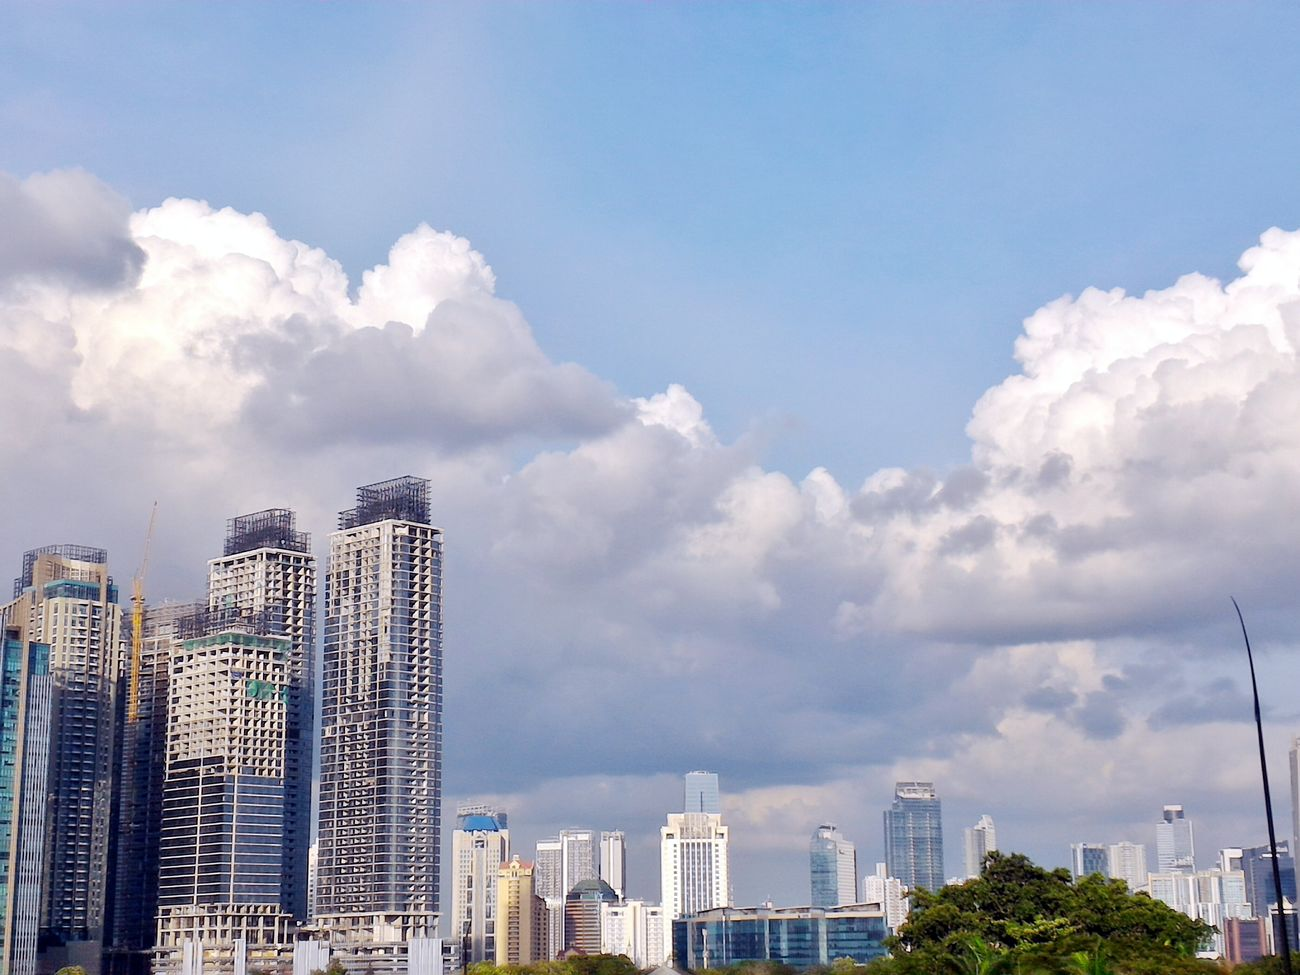 Awan Jakarta.. Urban Skyline Cityscape Skyscraper City Day Sky Cloudy Cloud - Sky Cloudscape Building Exterior Architecture My Year My View Building Story Construction Construction Site